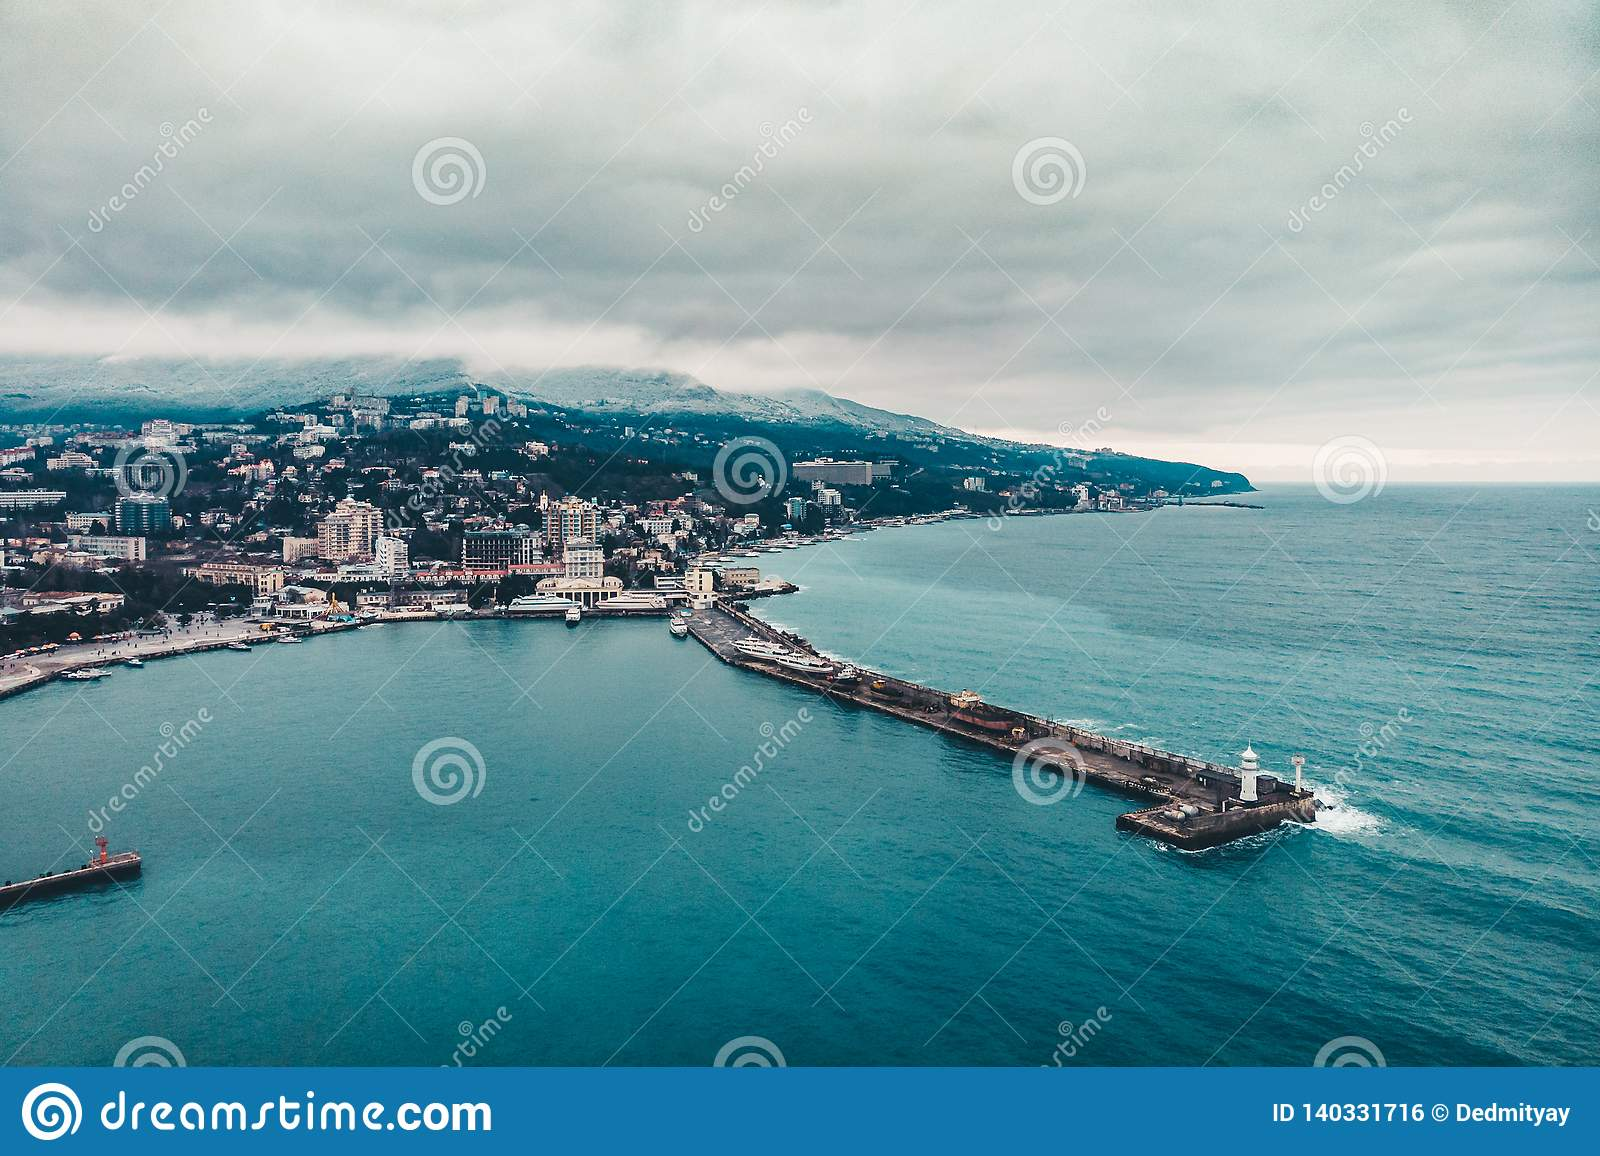 Aerial view of Yalta embankment from drone, old Lighthouse on pier, sea coast landscape and city buildings on mountains, Crimea